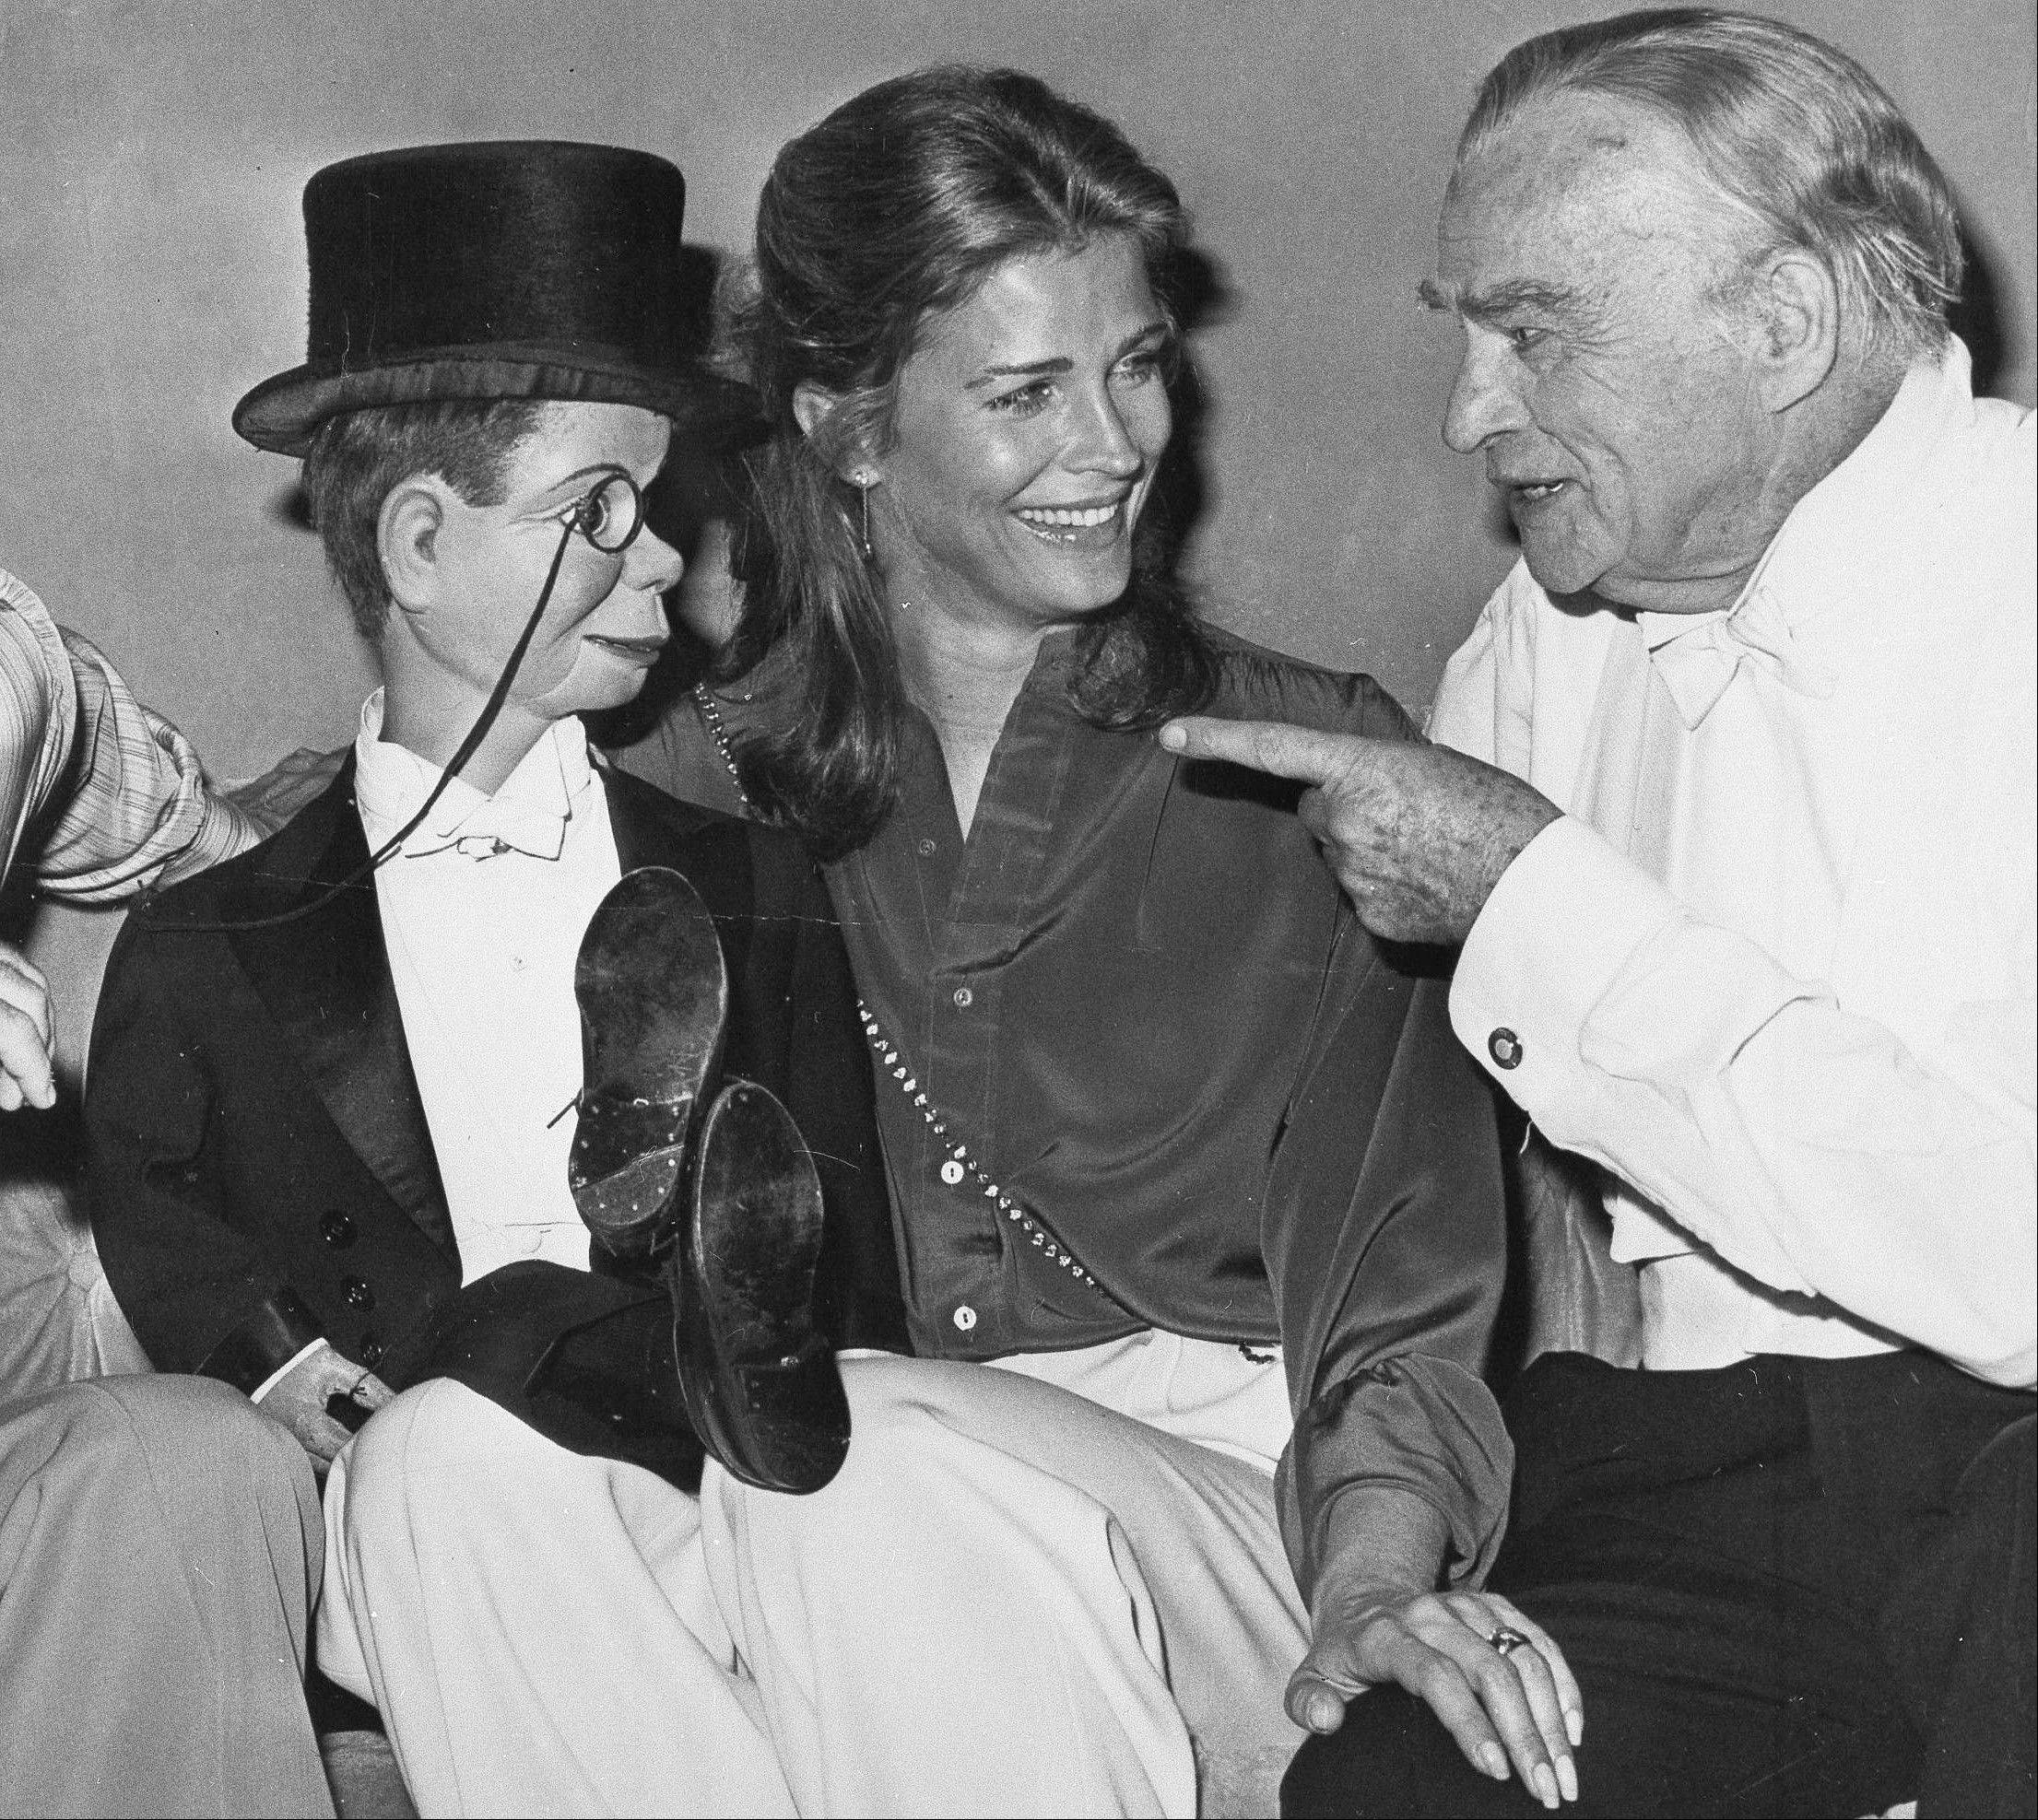 Dummy Charlie McCarthy with actress Candice Bergen and her father, ventriloquist Edgar Bergen. A spokeswoman for Candice Bergen says the actress is developing a film about her late father.